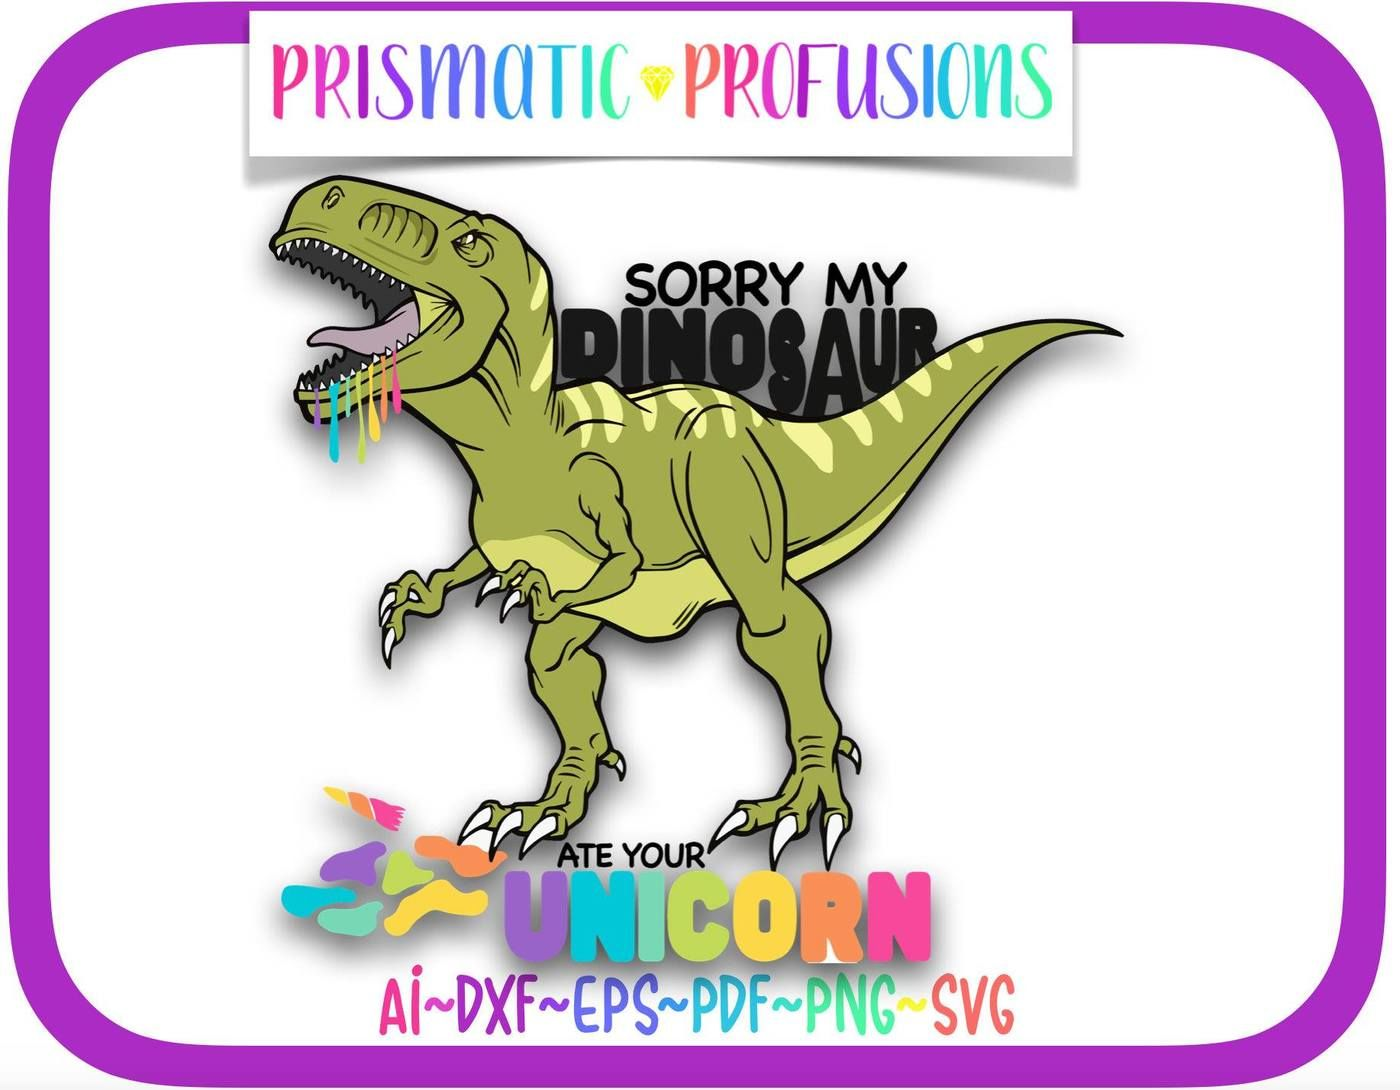 Sorry My Dinosaur Ate Your Unicorn Svg Clipart By Prismatic